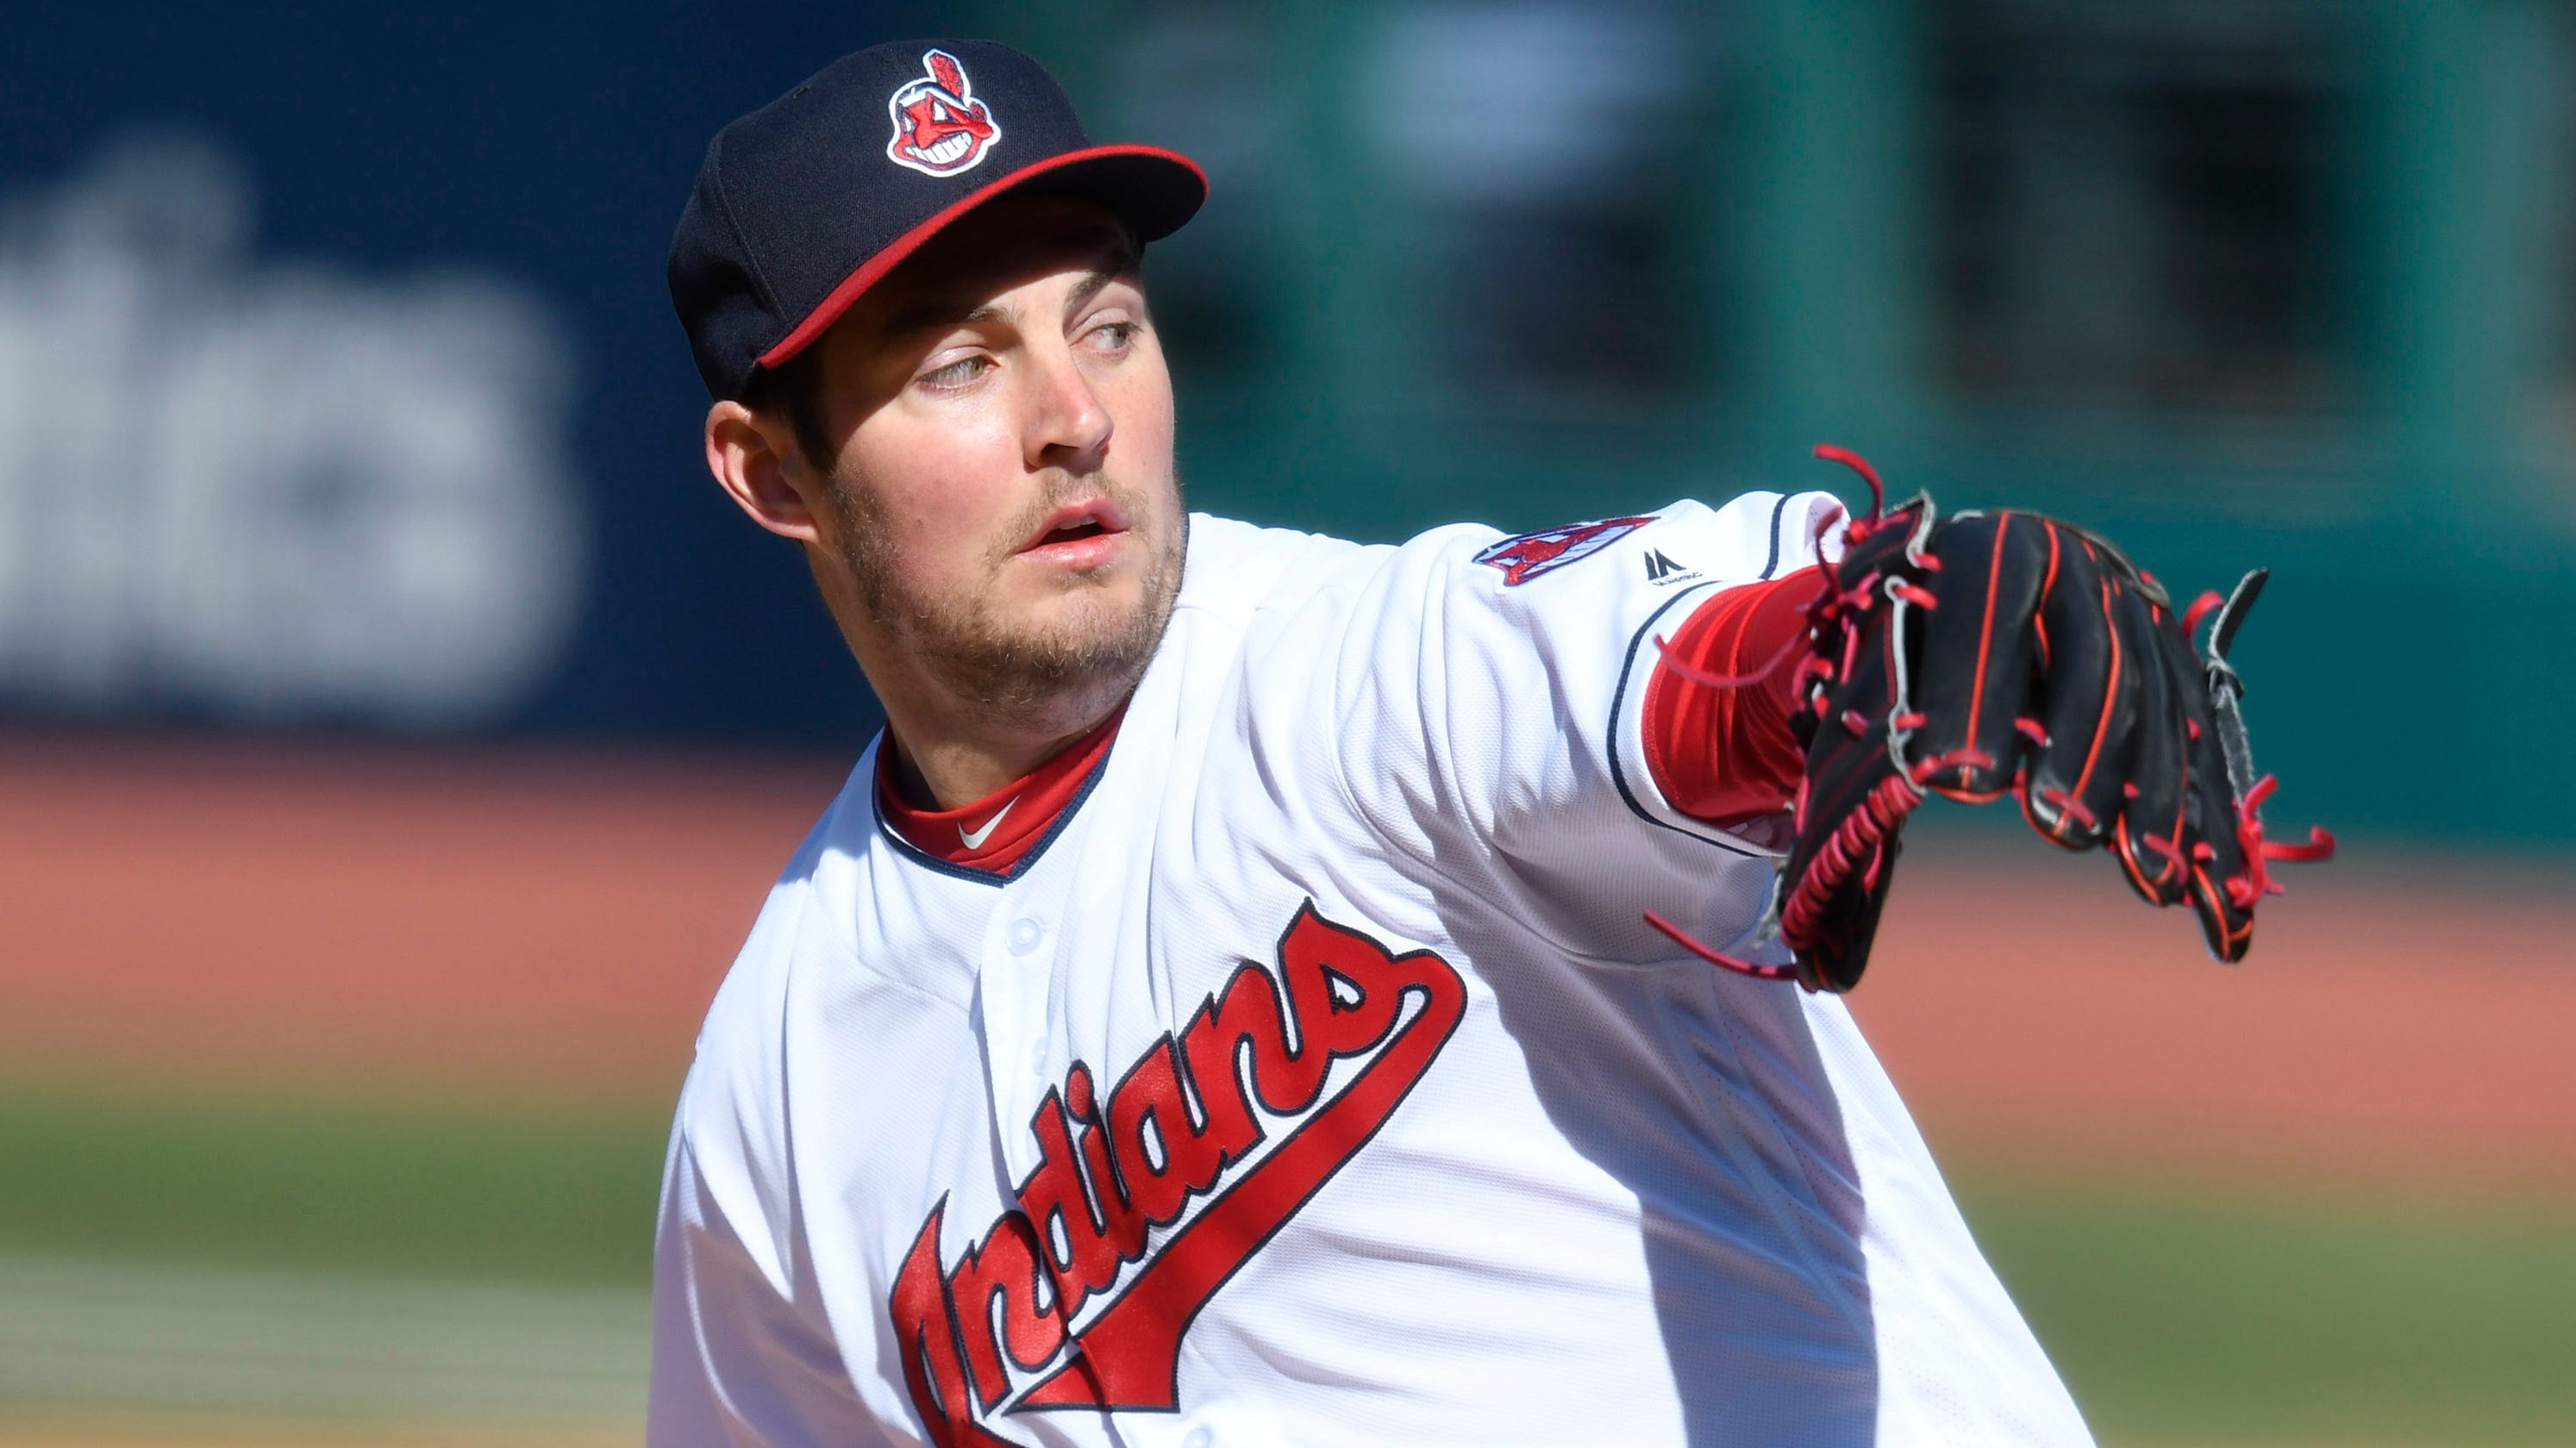 f1b3d5c19a16e Trevor Bauer  Student says Indians pitcher  harassed  her on Twitter